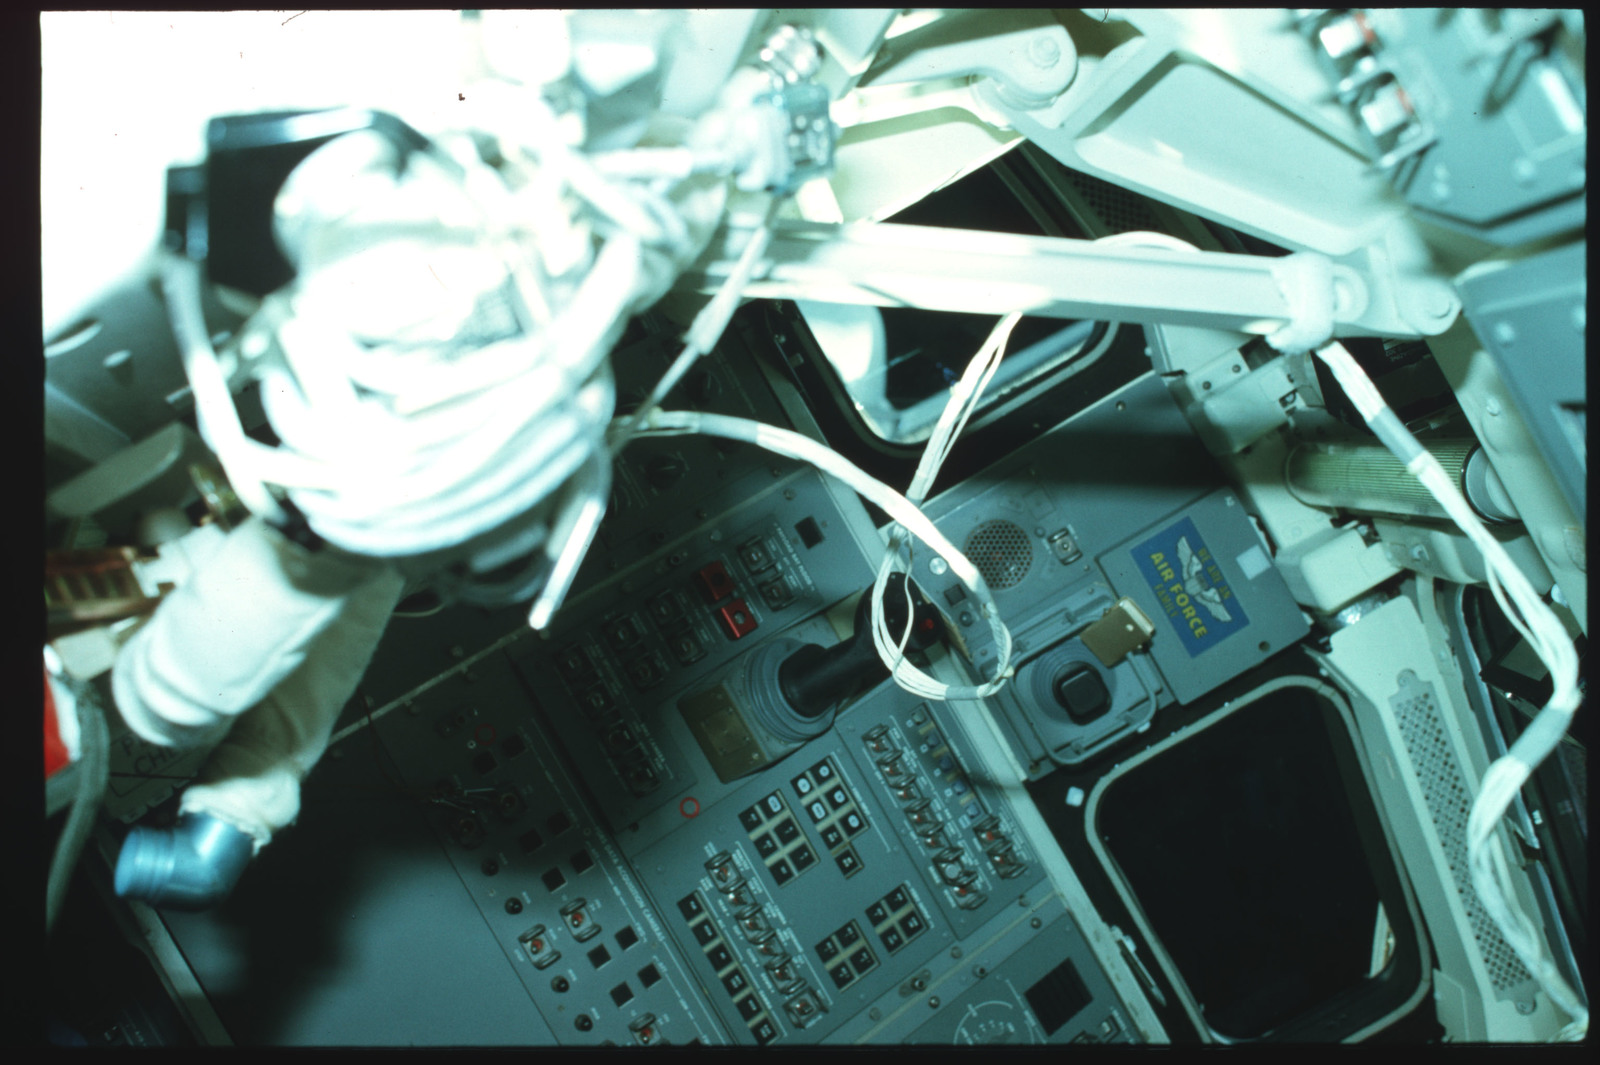 S02-02-856 - STS-002 - Aft Flight Deck Onorbit Station documentation